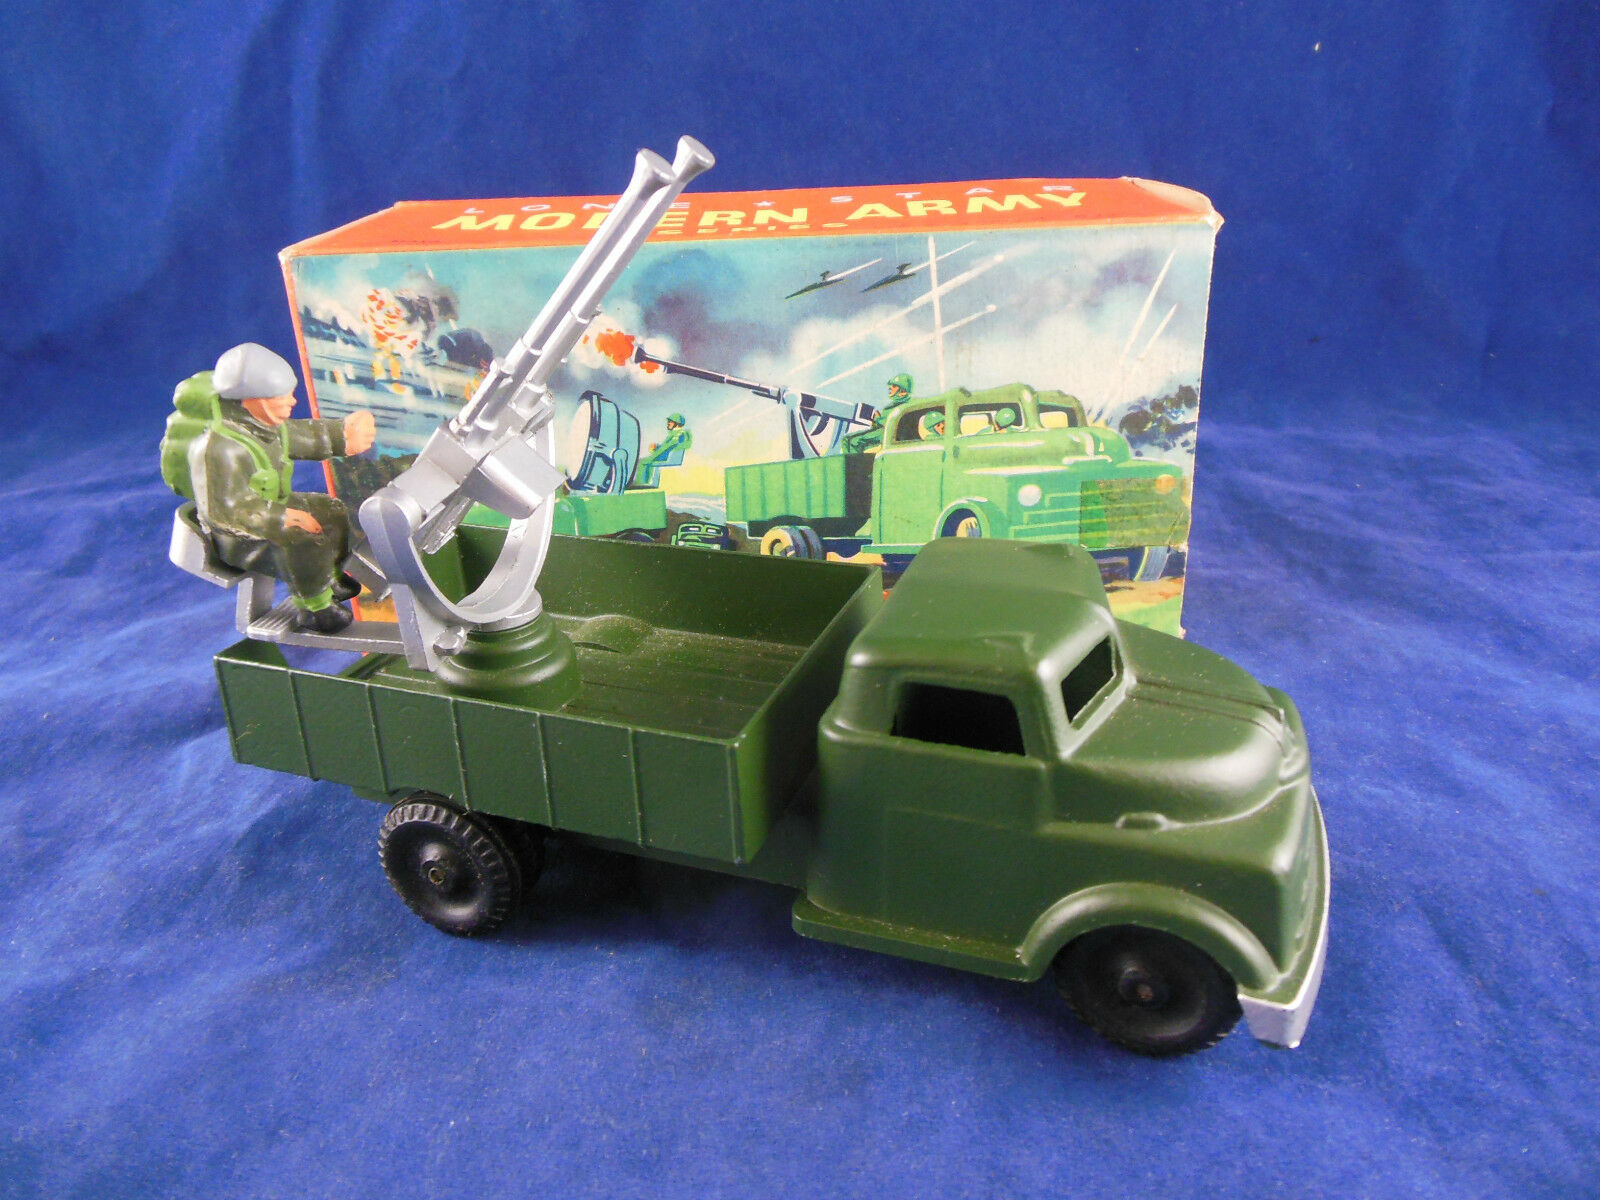 Scarce Lone Star Twin Pom Pom Lorry Modern Army Series